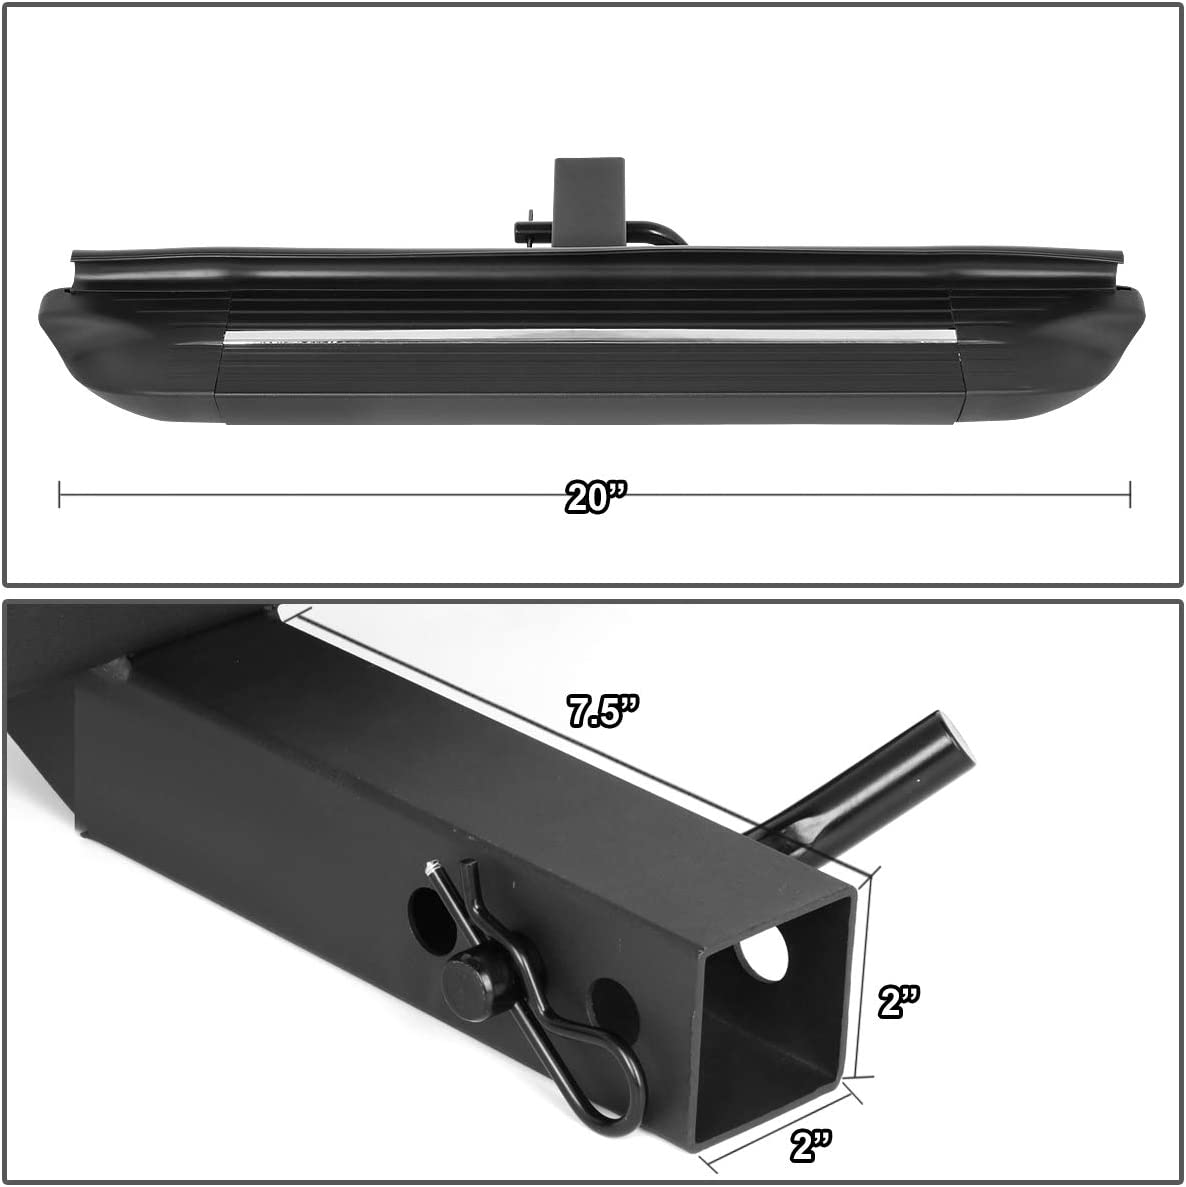 DNA MOTORING PT-ZTL-8079-BK 2 Inches Receiver 26.75 x 4 Inches Square Tow Hitch Step Bar fit Fits Vehicles with 2 Trailer Hitch